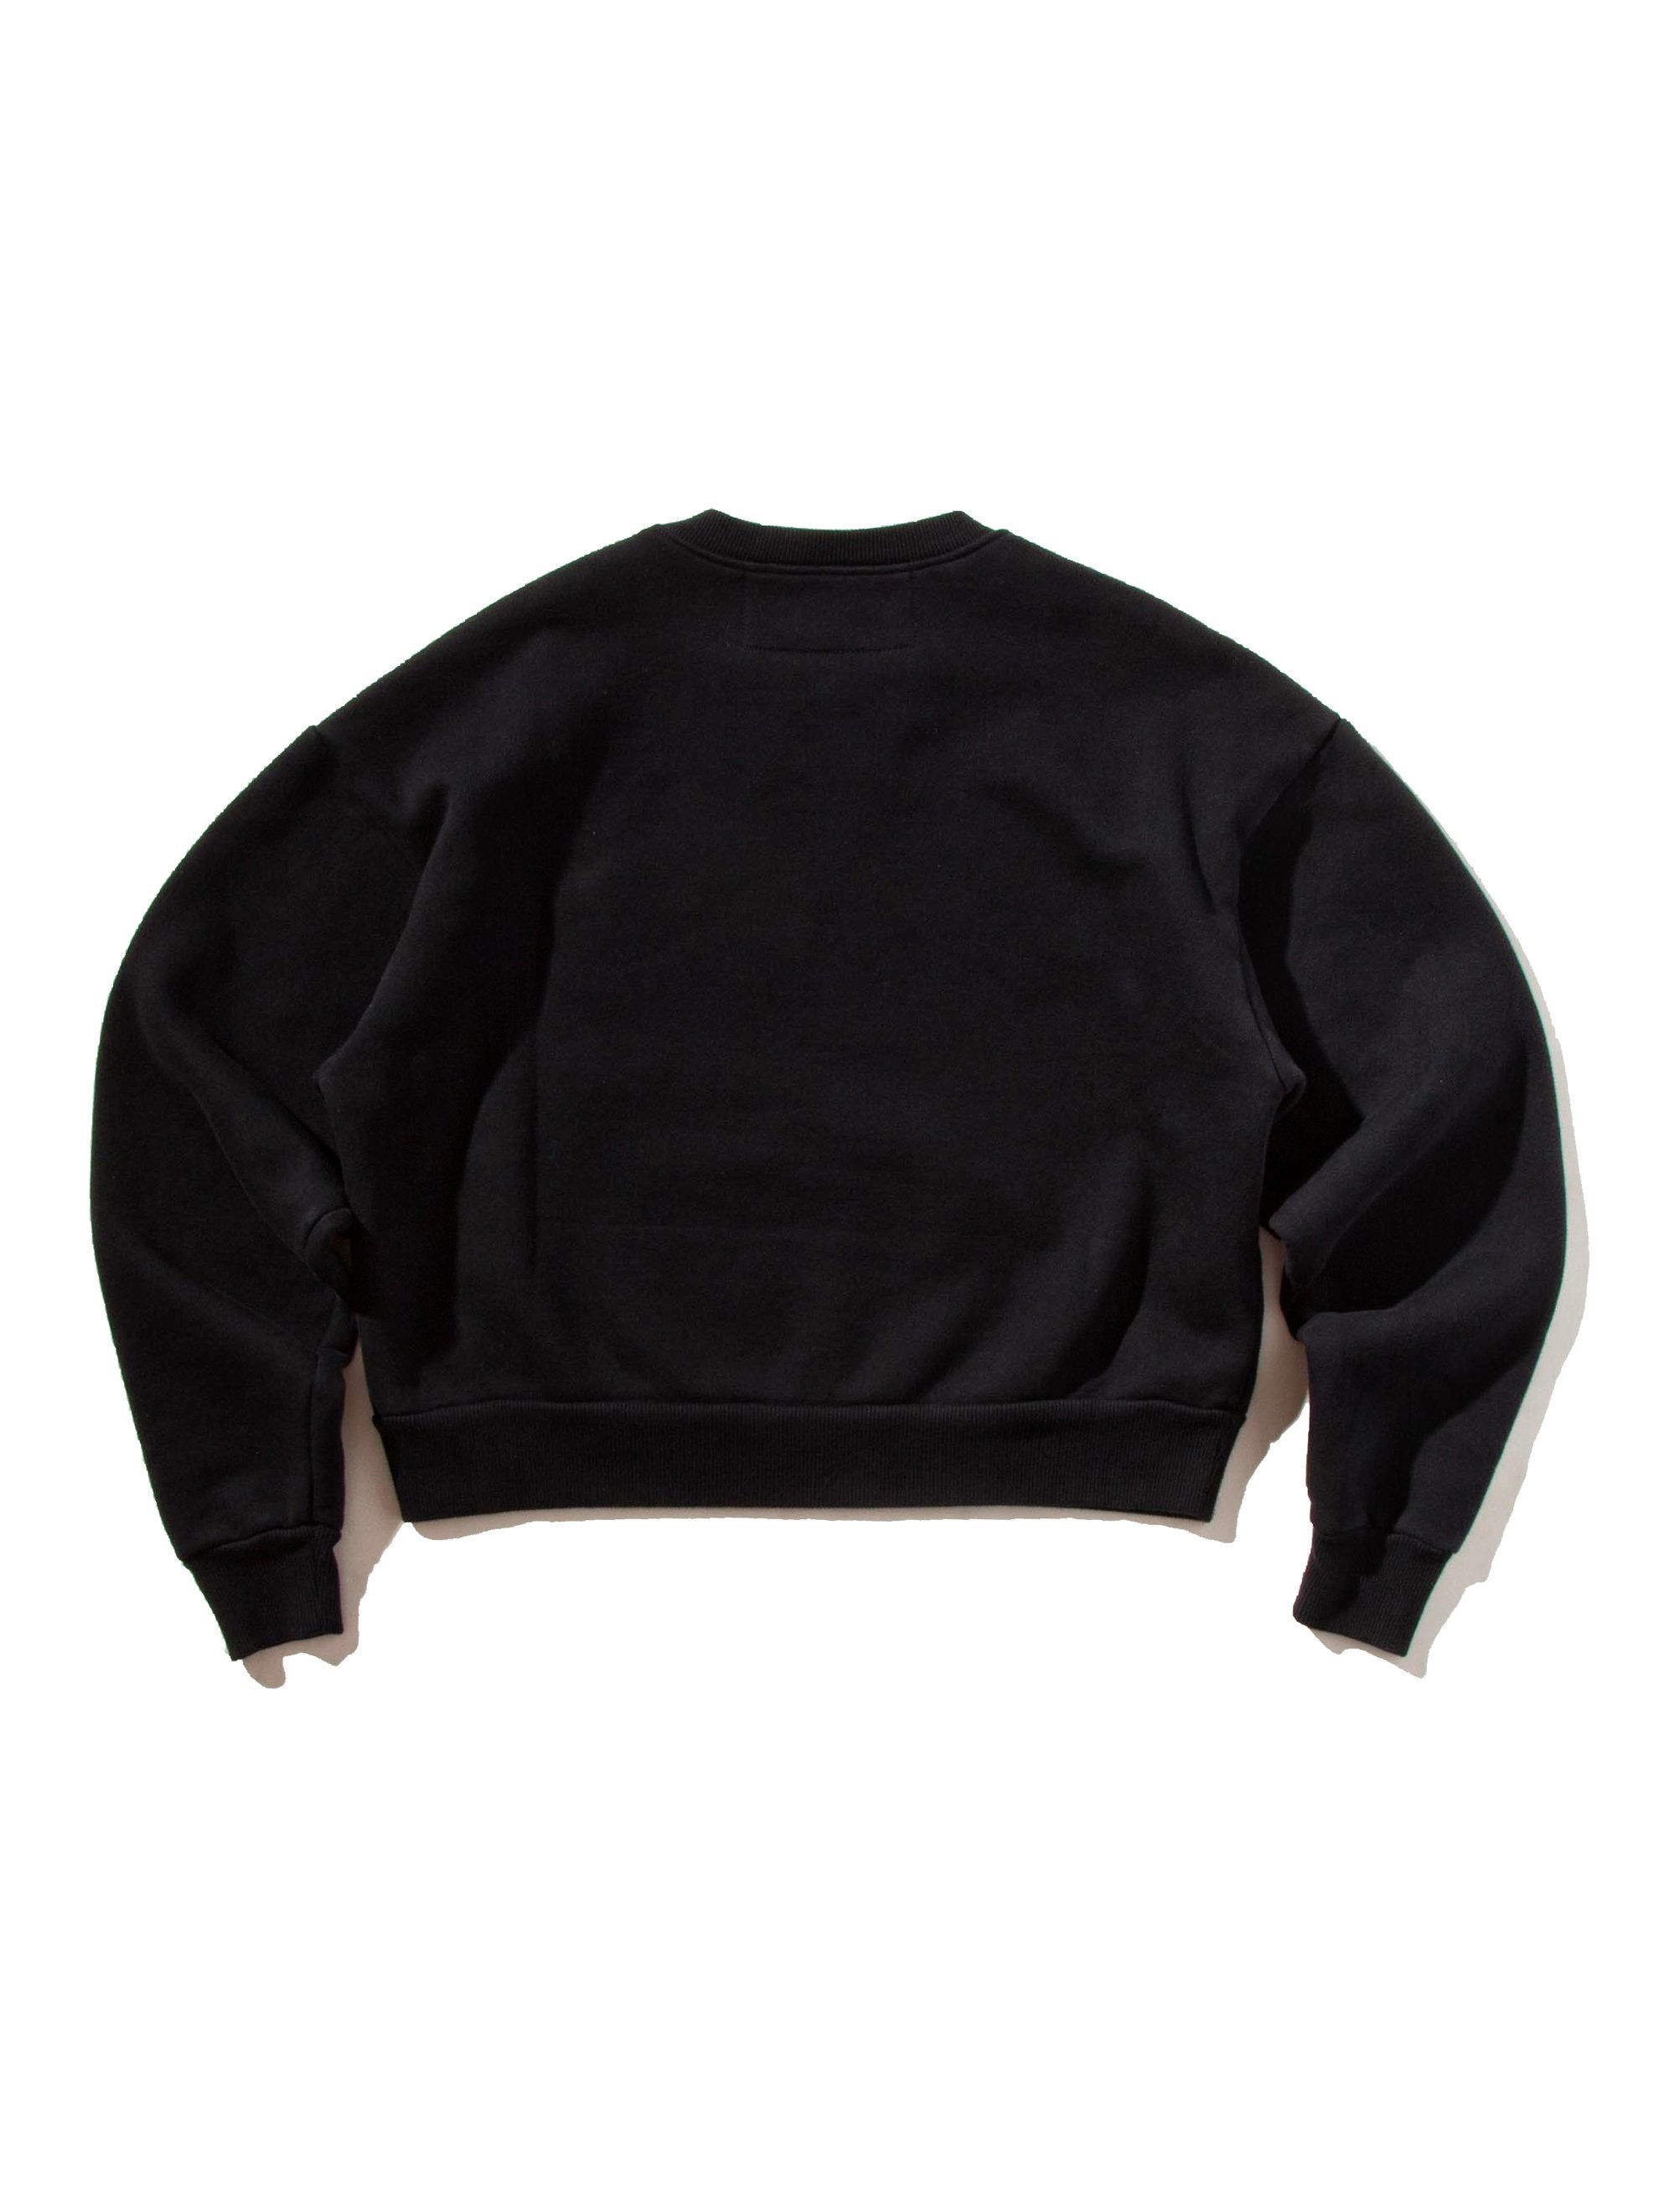 Black Live In Paris Crewneck Sweatshirt 7